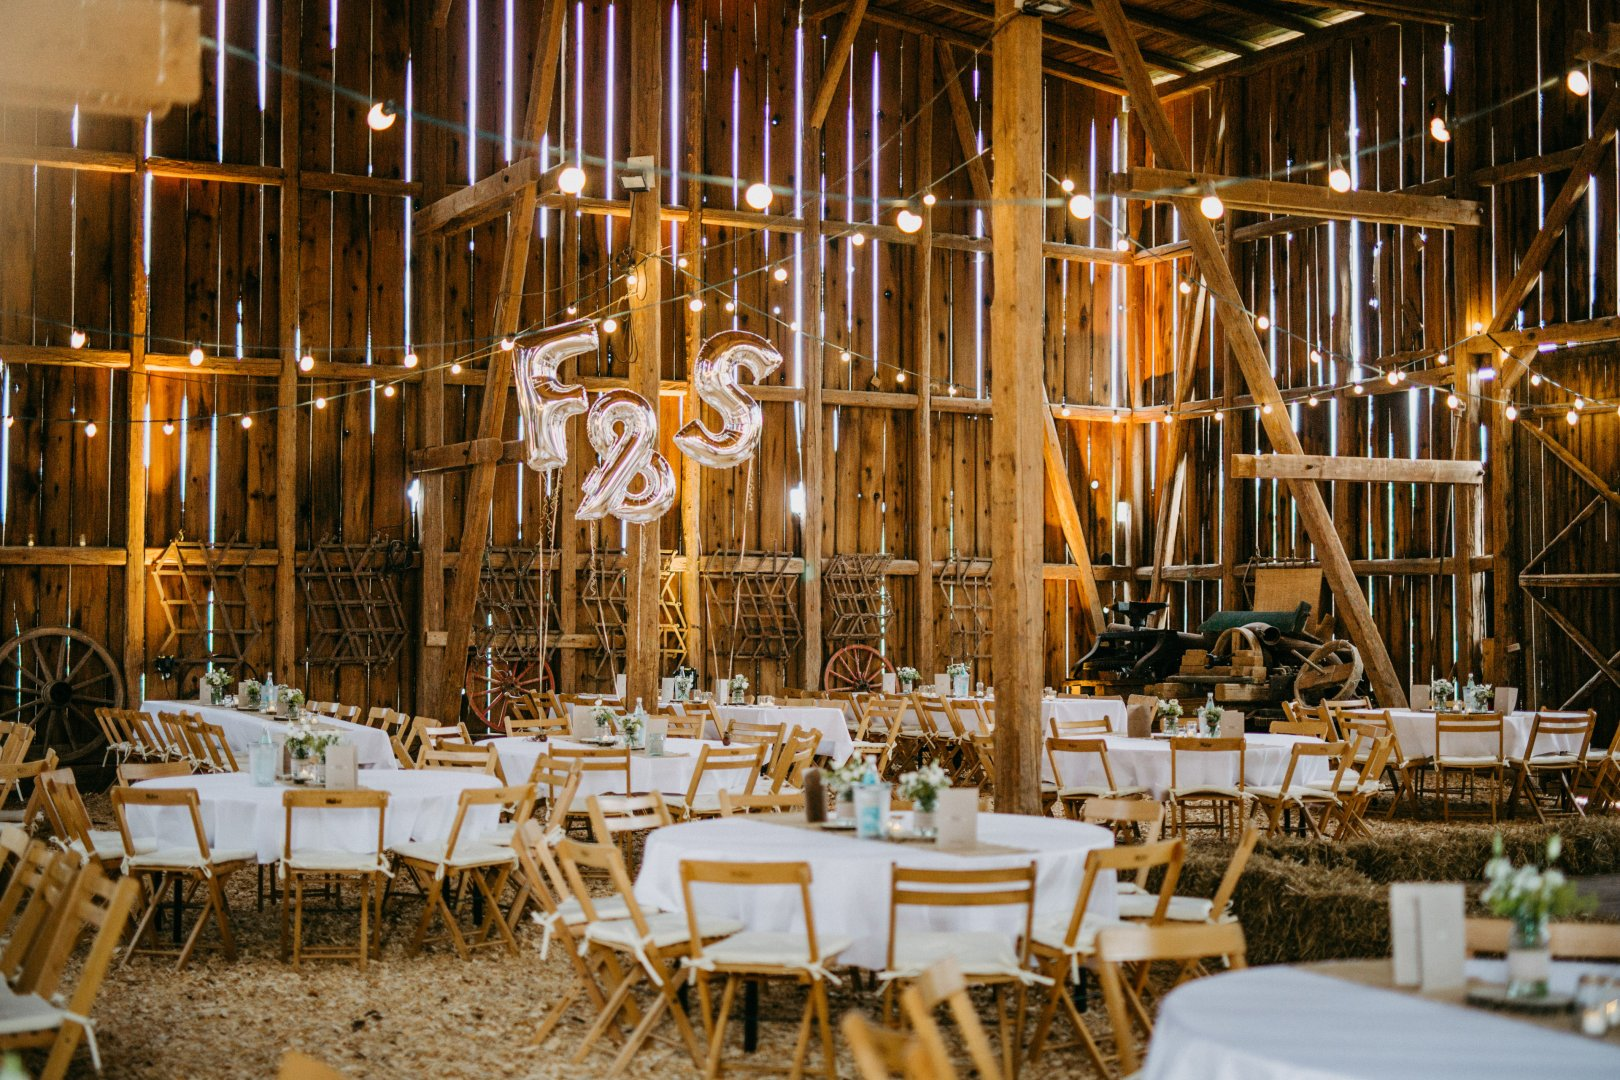 Chiavari chair Function hall Rehearsal dinner Restaurant Lighting Yellow Chair Table Room Interior design Party Ballroom Furniture Wedding reception Architecture Centrepiece Building Banquet Dining room